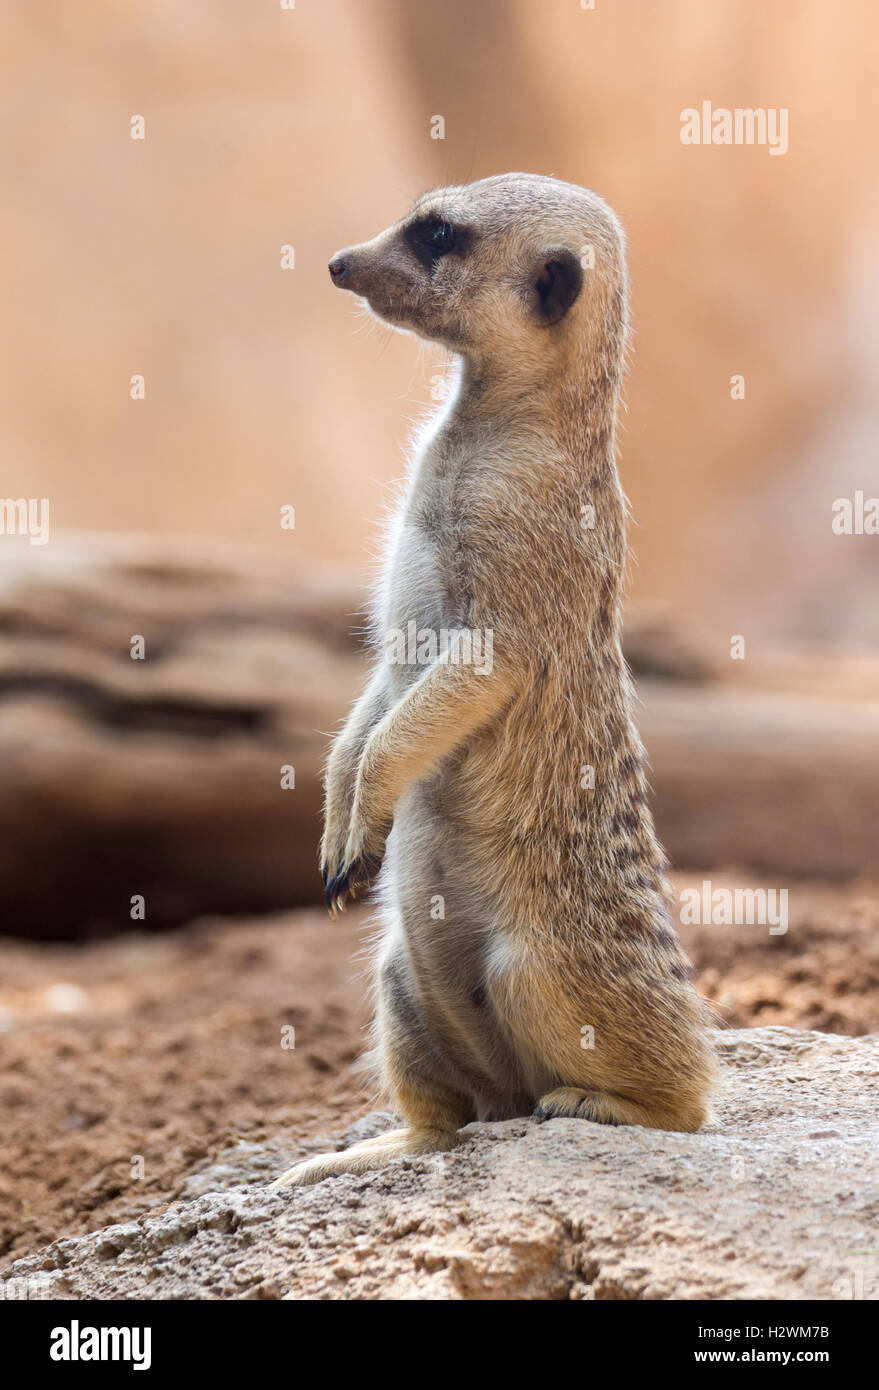 An meerkat standing in typical pose Stock Photo